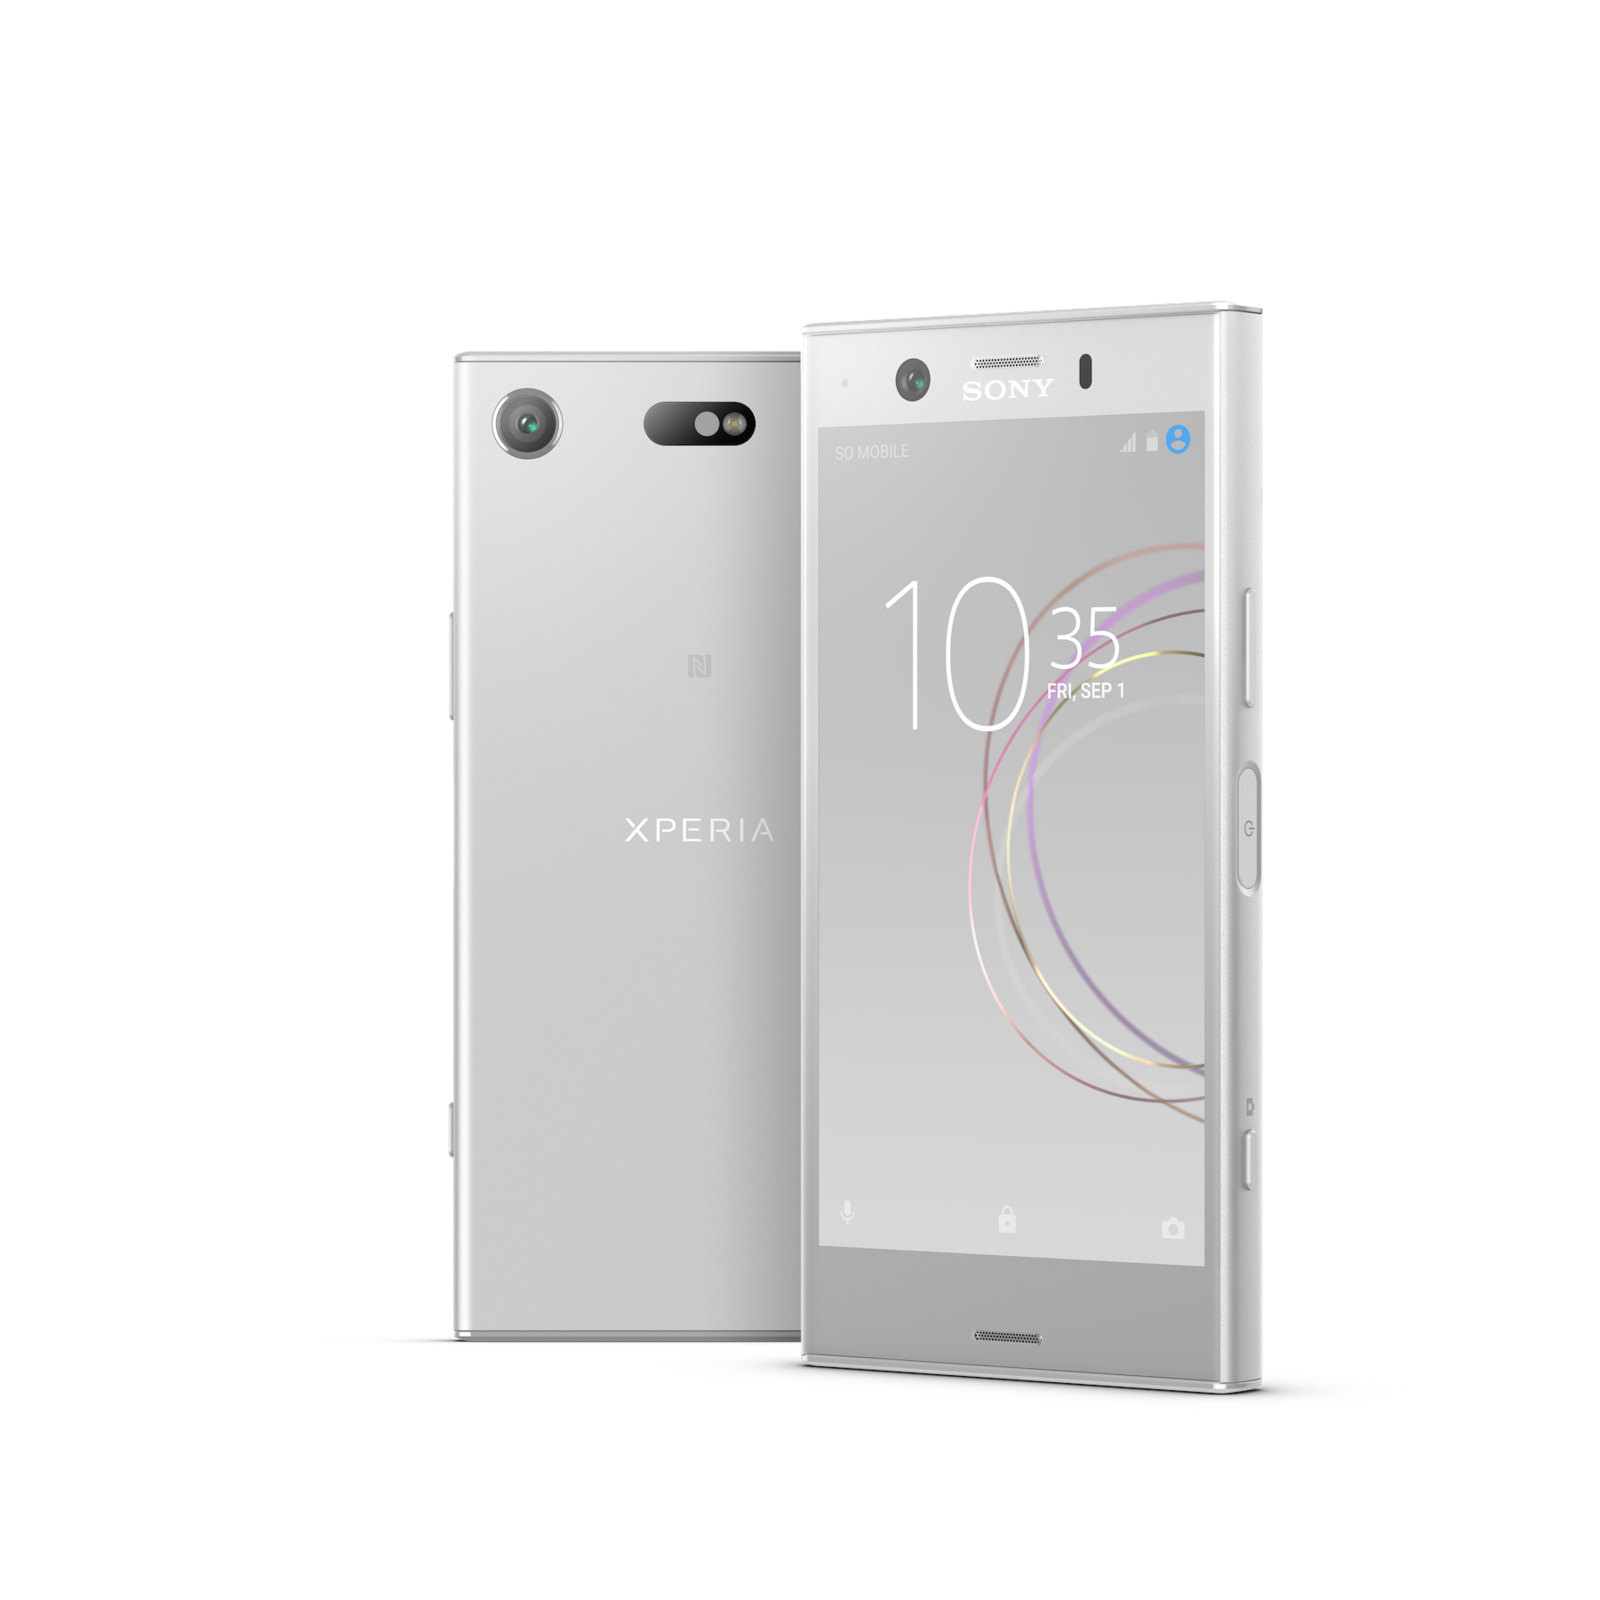 Sony Xperia XZ Premium is getting Android 8.0 Oreo starting today